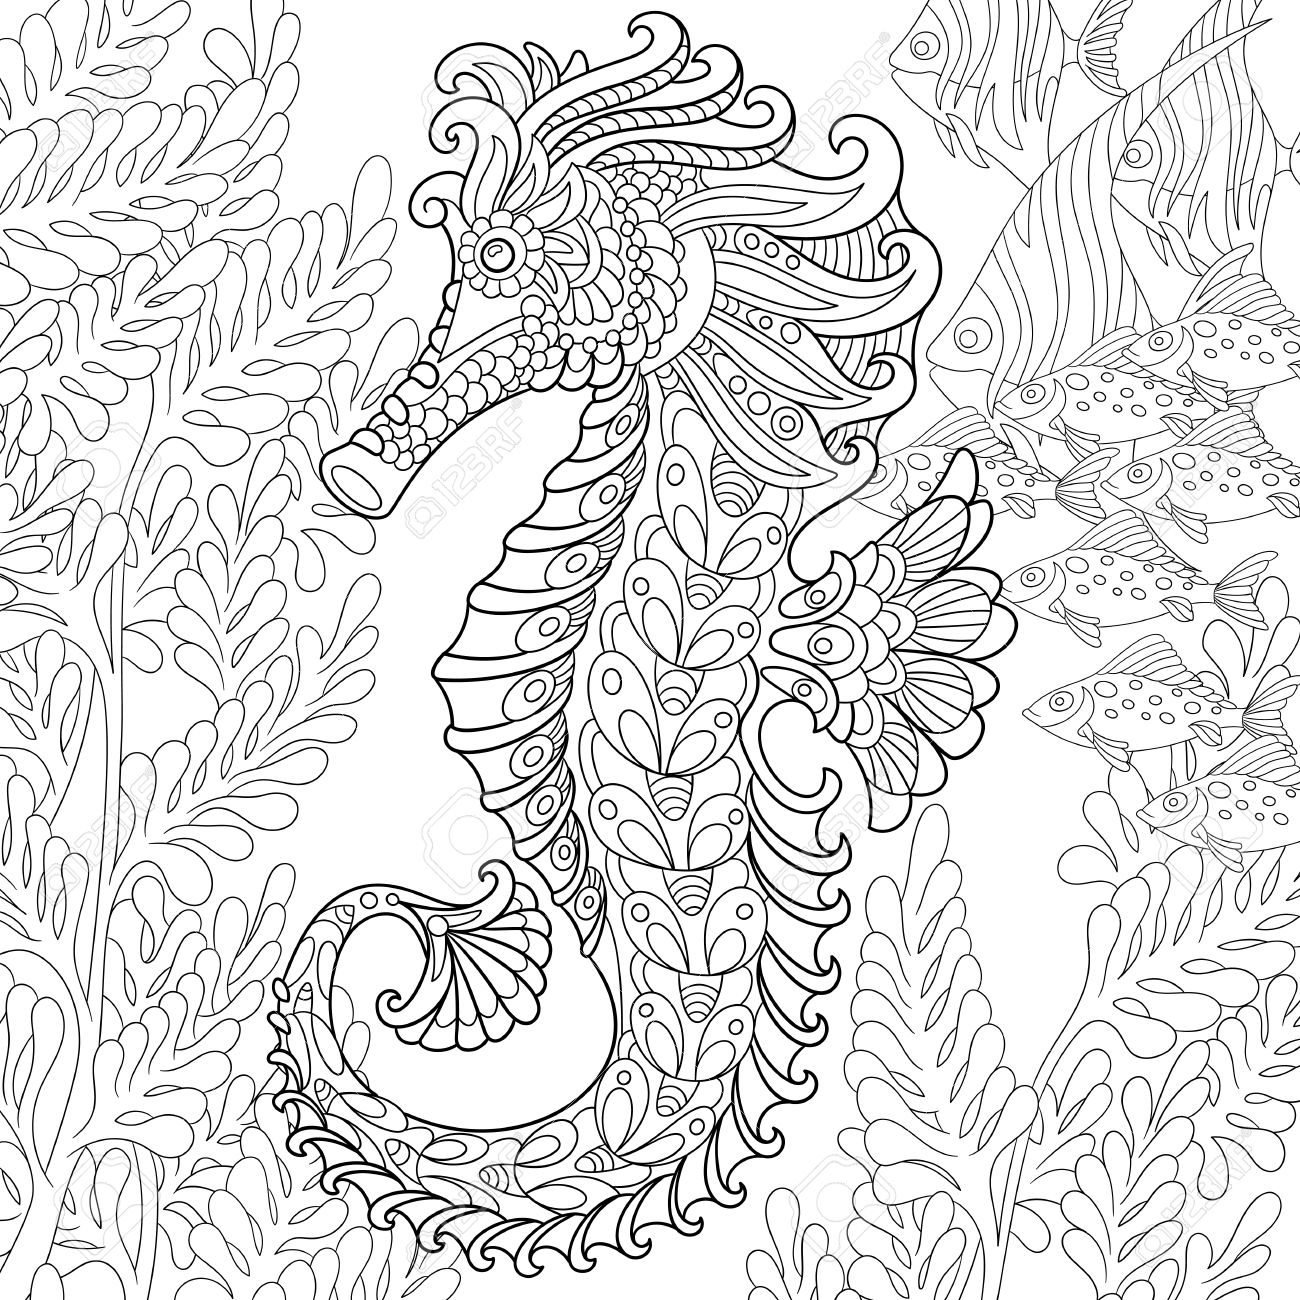 cartoon seahorse and tropical fish among seaweed hand drawn